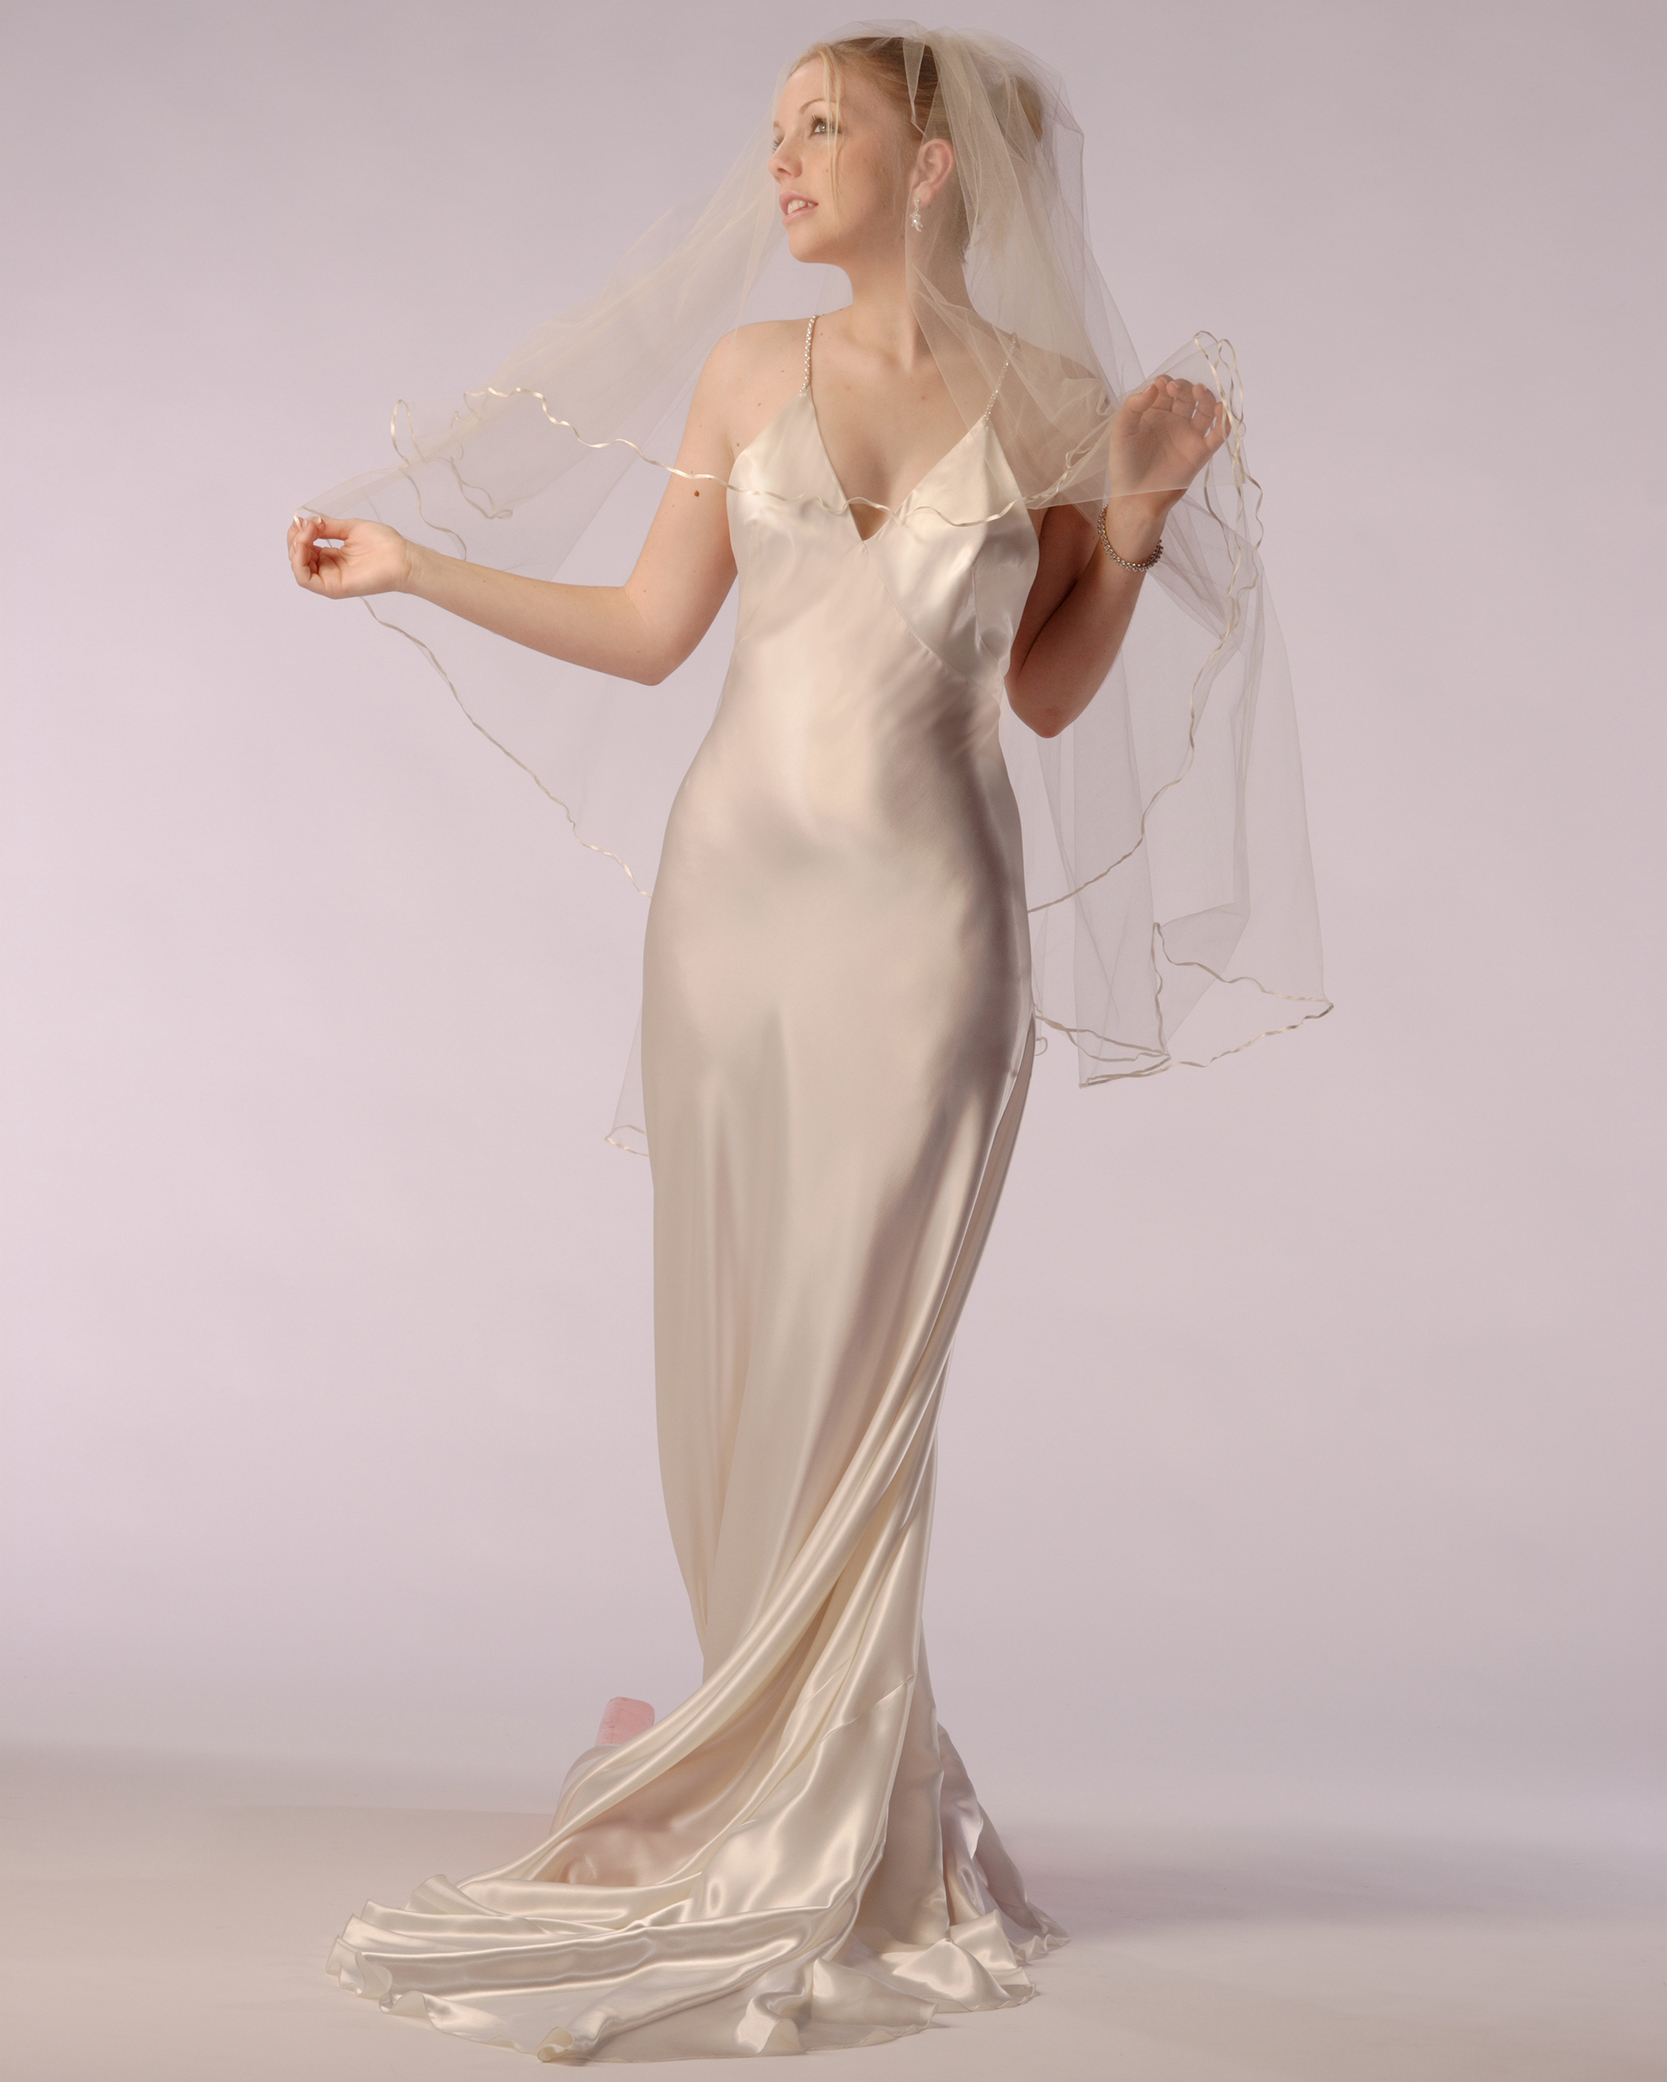 376f55066e8c ... 1930 s style Bias cut bridal gown. wht veil 0382 MAIN. bridal1  wht 0337 crop DETAIL wht front 0377 crop DETAIL wht veil crop 0381 DETAIL